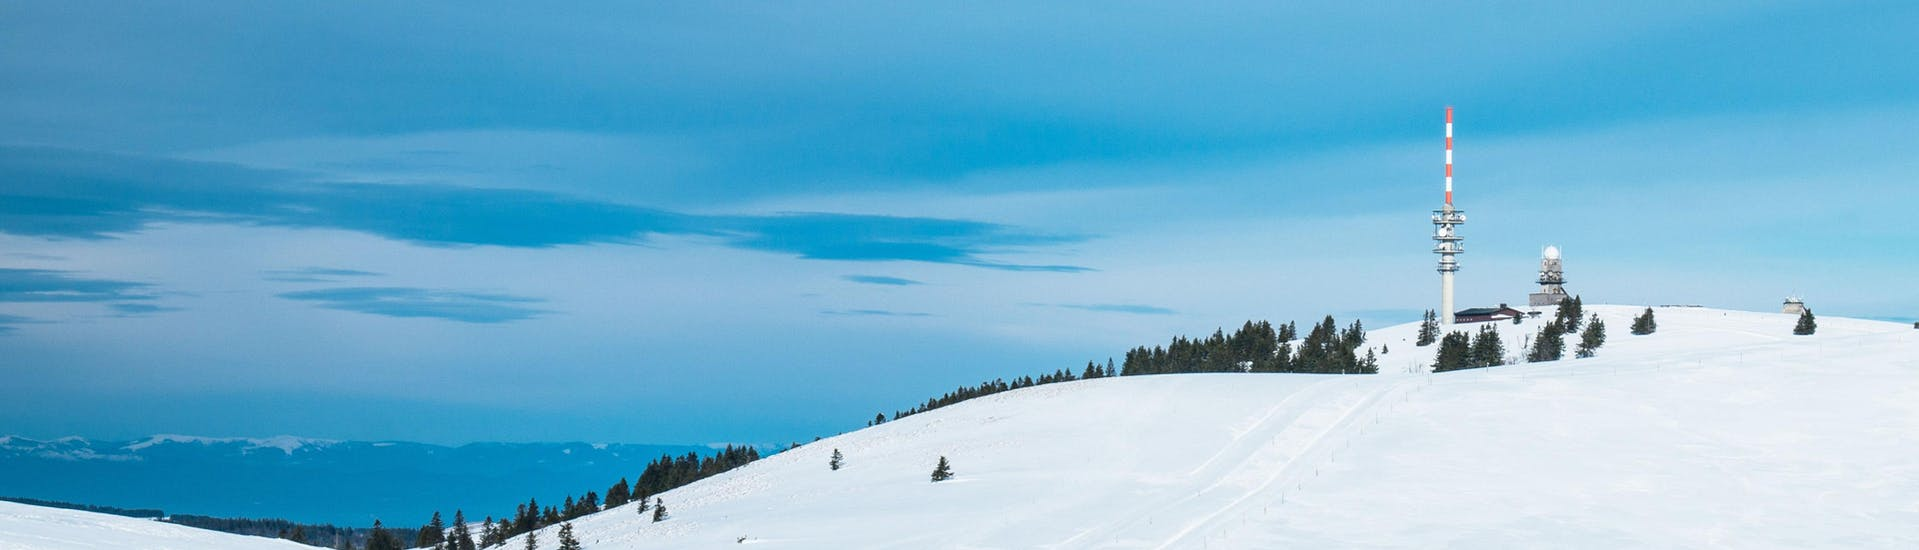 Private Ski Lessons for Adults of All Levels with Schneesportschule Thoma Feldberg - Hero image